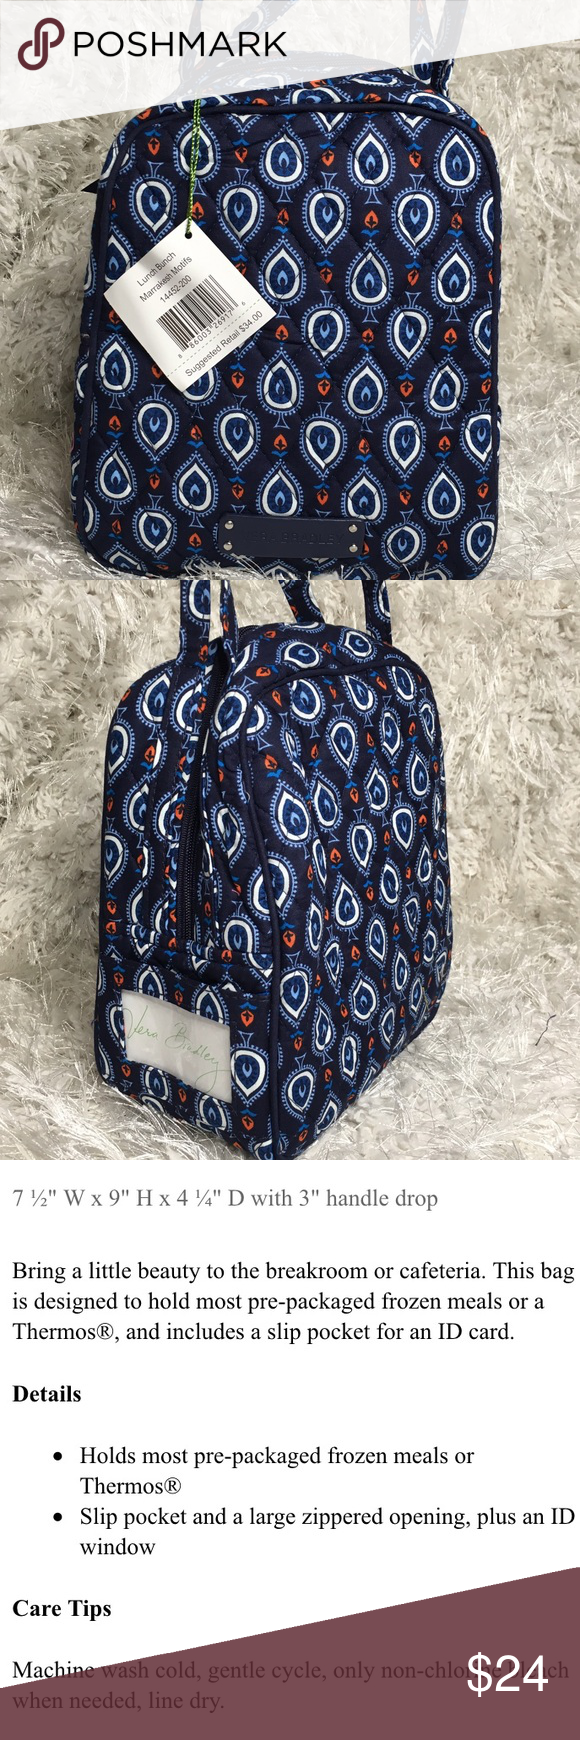 Vera Bradley Lunch Bunch Baby Bottles Bag Brand new, never used, with  retail tag dd6a4433c3